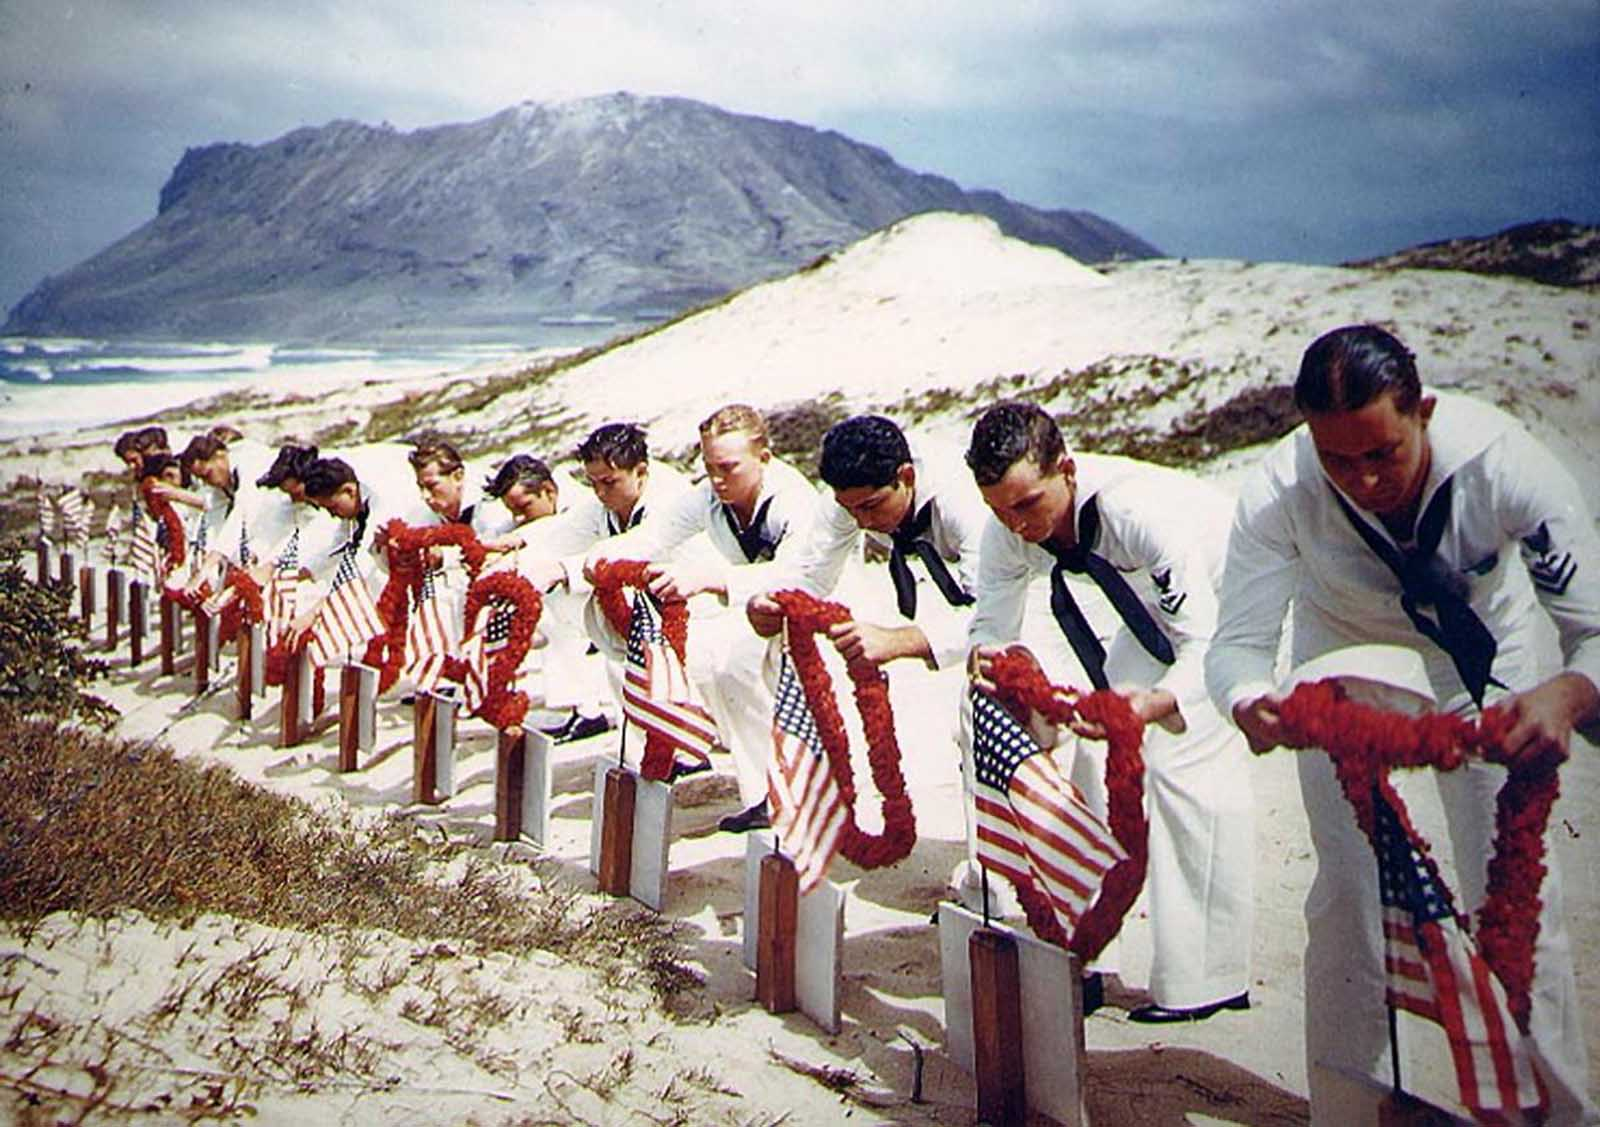 Following Hawaiian tradition, sailors honor men killed during the December 7, 1941, Japanese attack on Naval Air Station Kaneohe, Oahu. The casualties had been buried on December 8. This ceremony took place sometime during the following months.